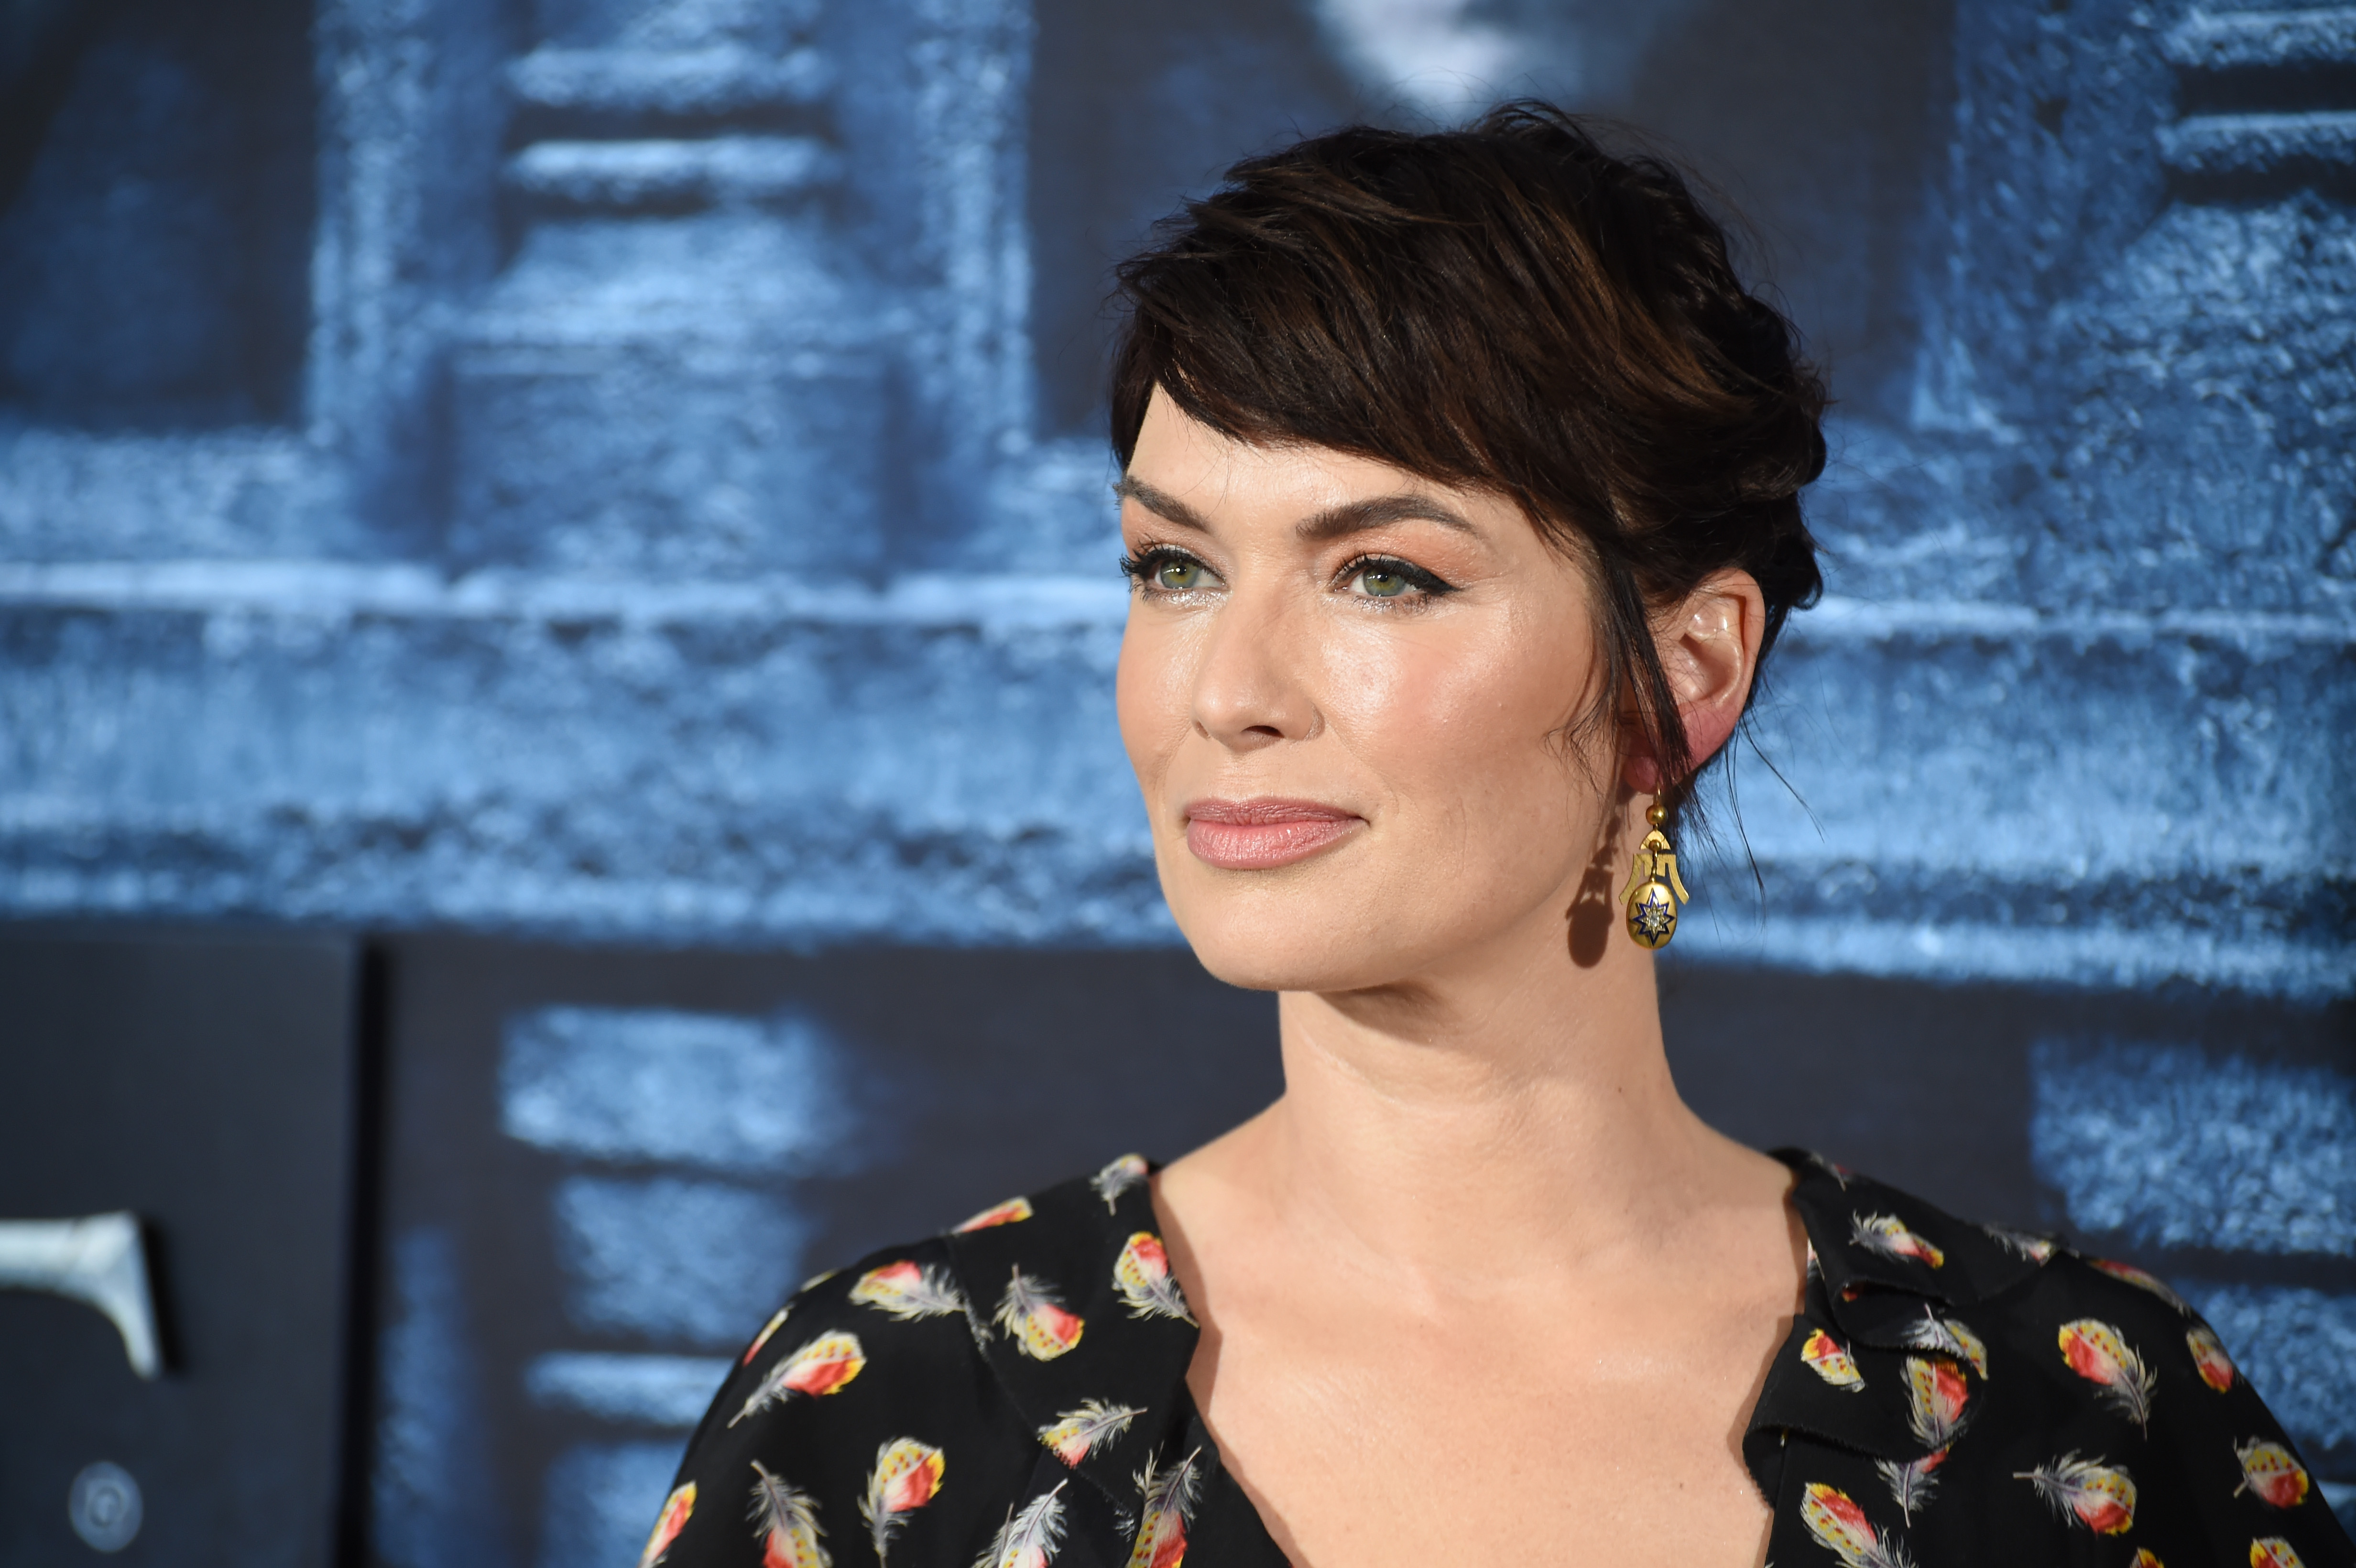 HOLLYWOOD, CALIFORNIA - APRIL 10:  Actress Lena Headey attends the premiere for the sixth season of HBO's  Game Of Thrones  at TCL Chinese Theatre on April 10, 2016 in Hollywood City.  (Photo by Jeff Kravitz/FilmMagic for HBO)